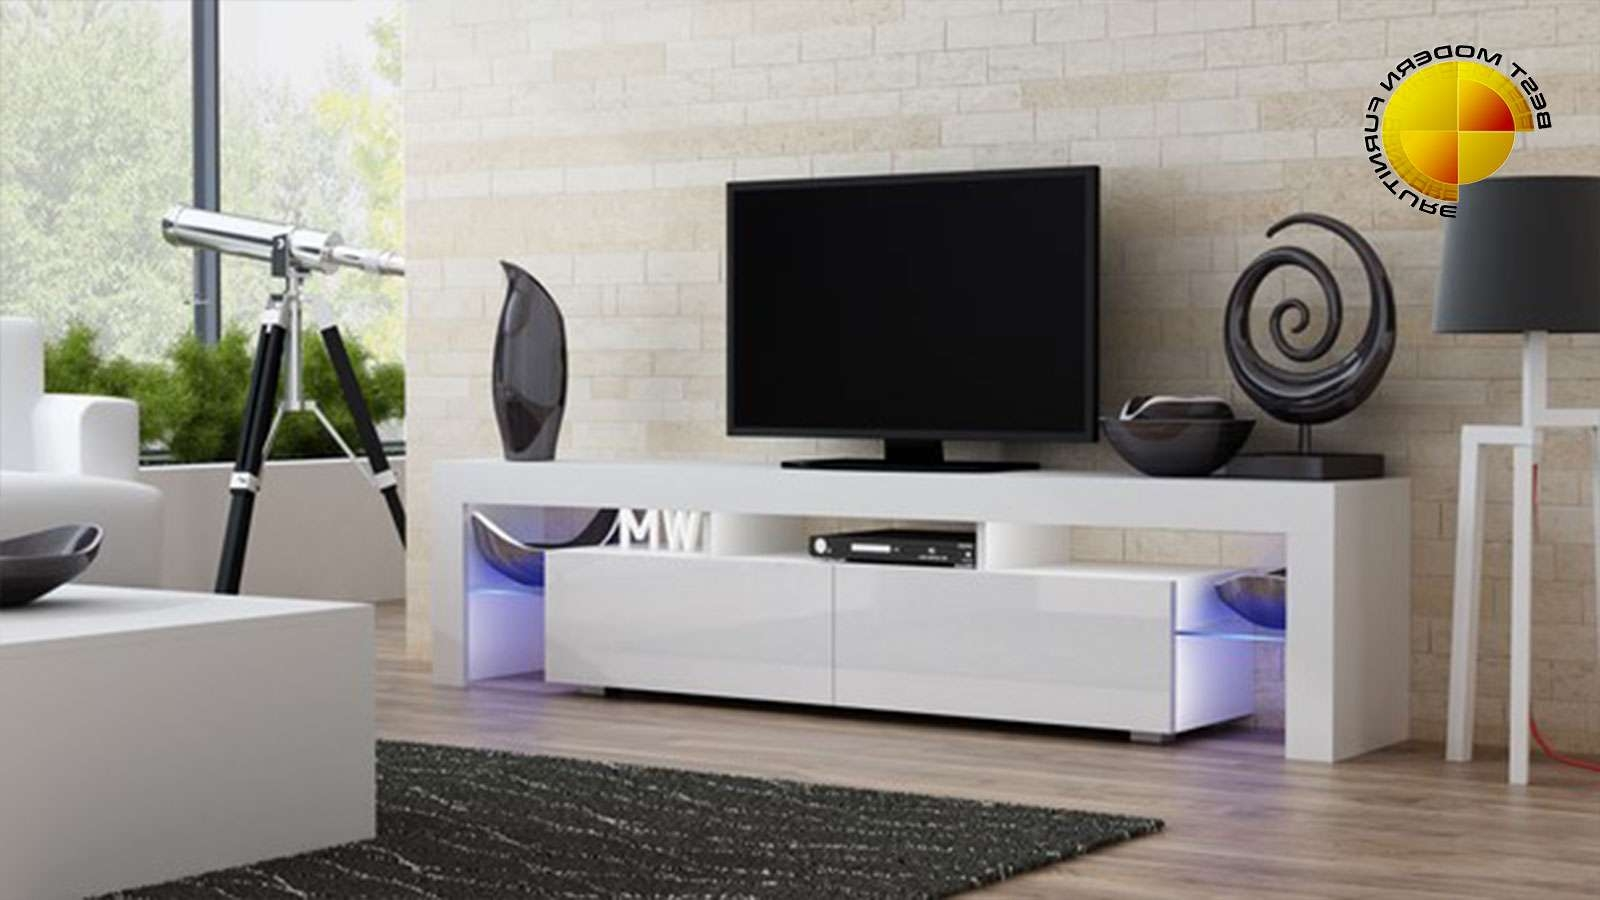 Black And White Tv Stand Modern 130Cm High Gloss Cabinet Free Rgb With Regard To White High Gloss Tv Stands Unit Cabinet (View 2 of 15)